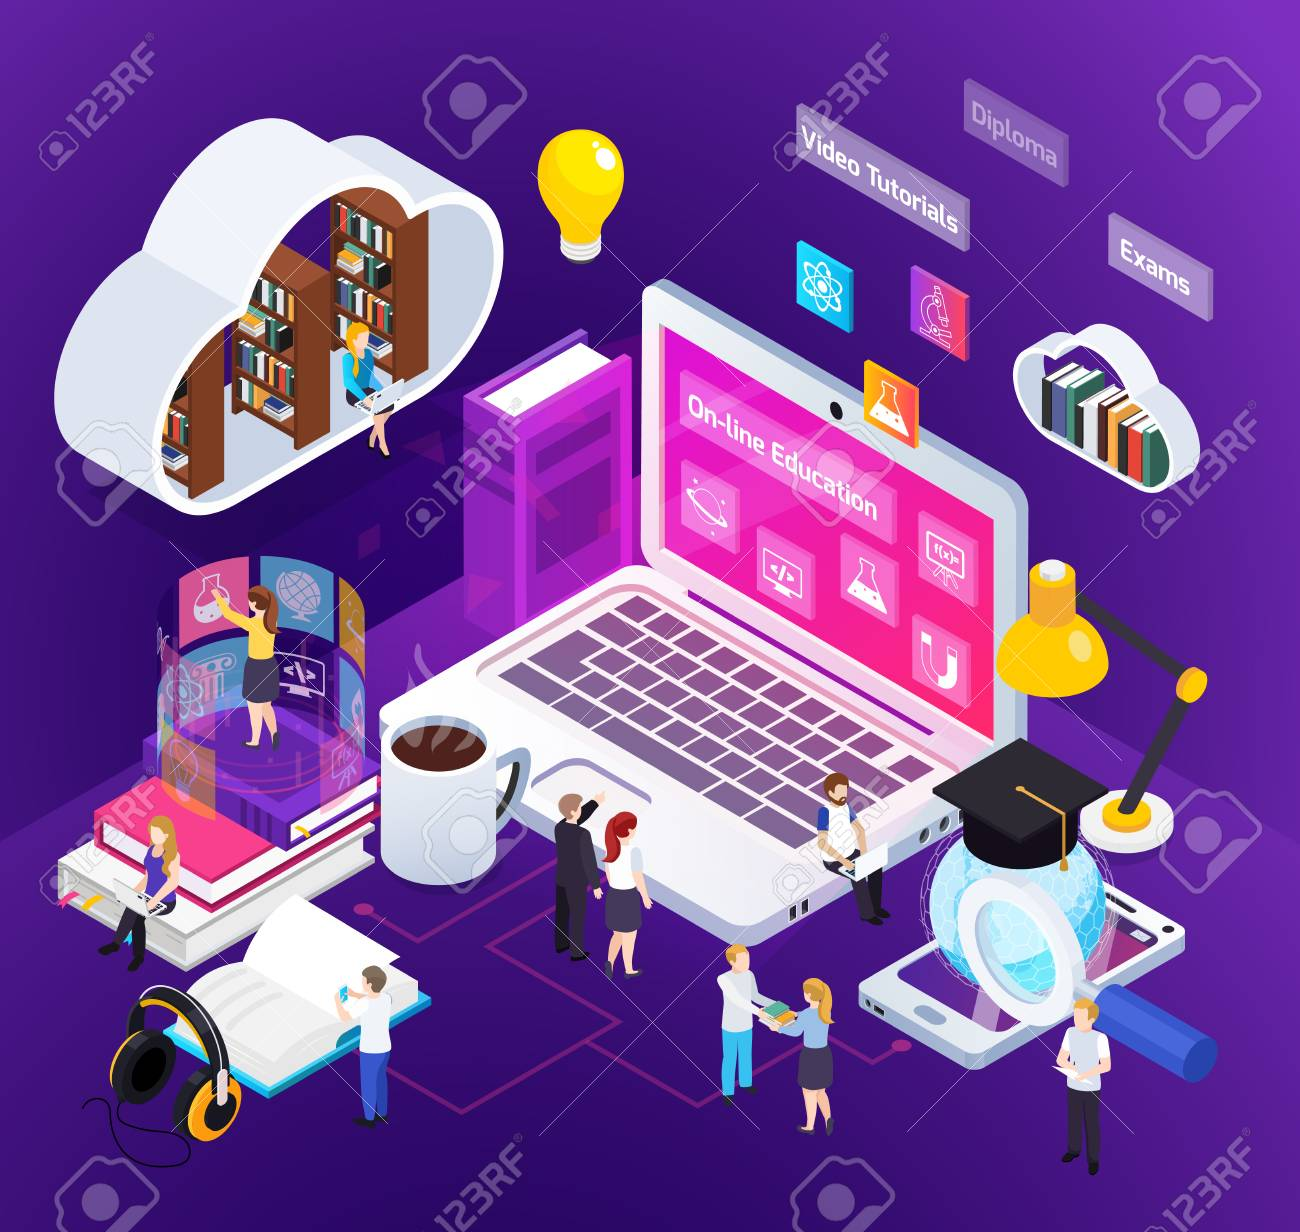 E-learning distance education bright glow isometric composition with studying home people degree virtual environment vector illustration - 106993598